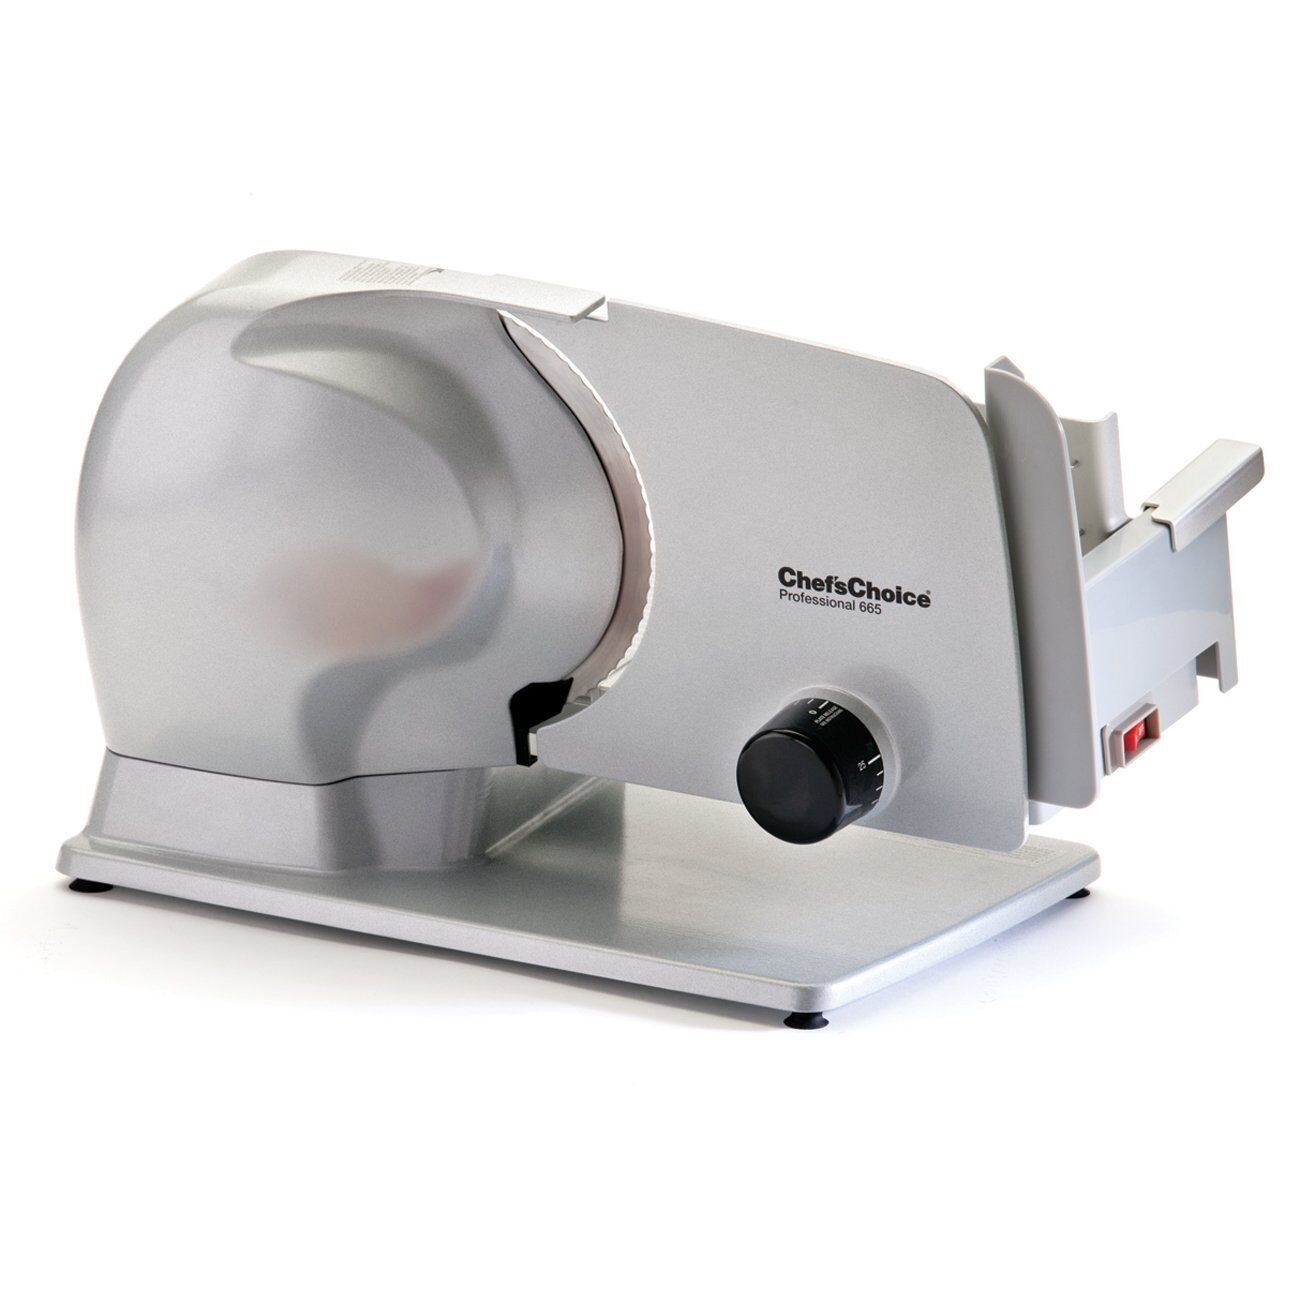 Chef S Choice  Professional Electric Food Slicer